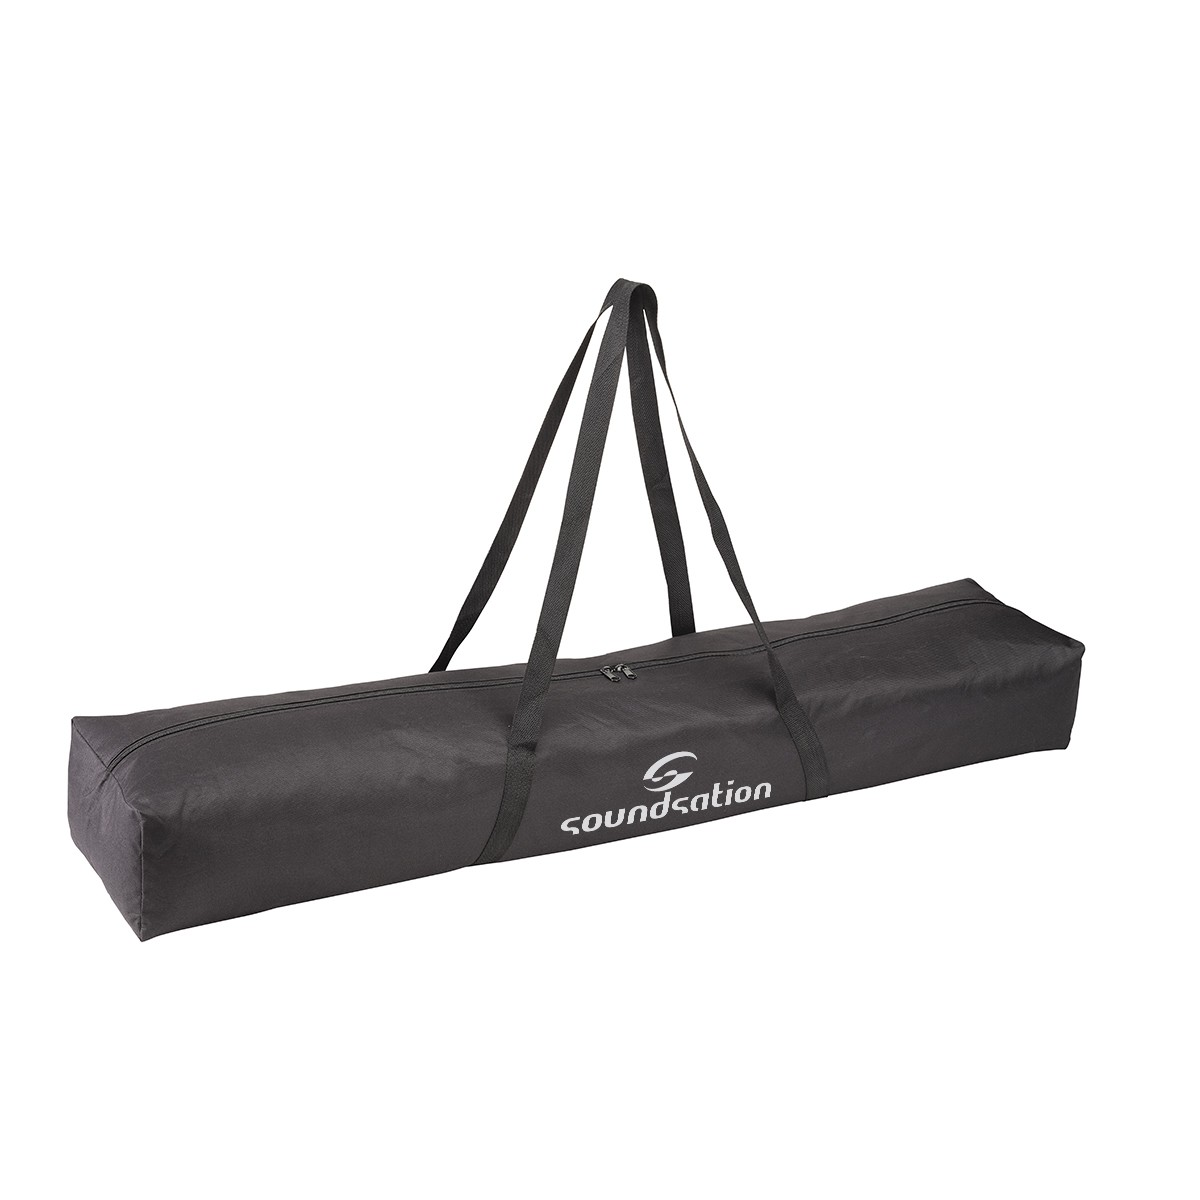 BORSA SOUNSATION BG-600D PER 2 SUPPORTI DIFFUSORI